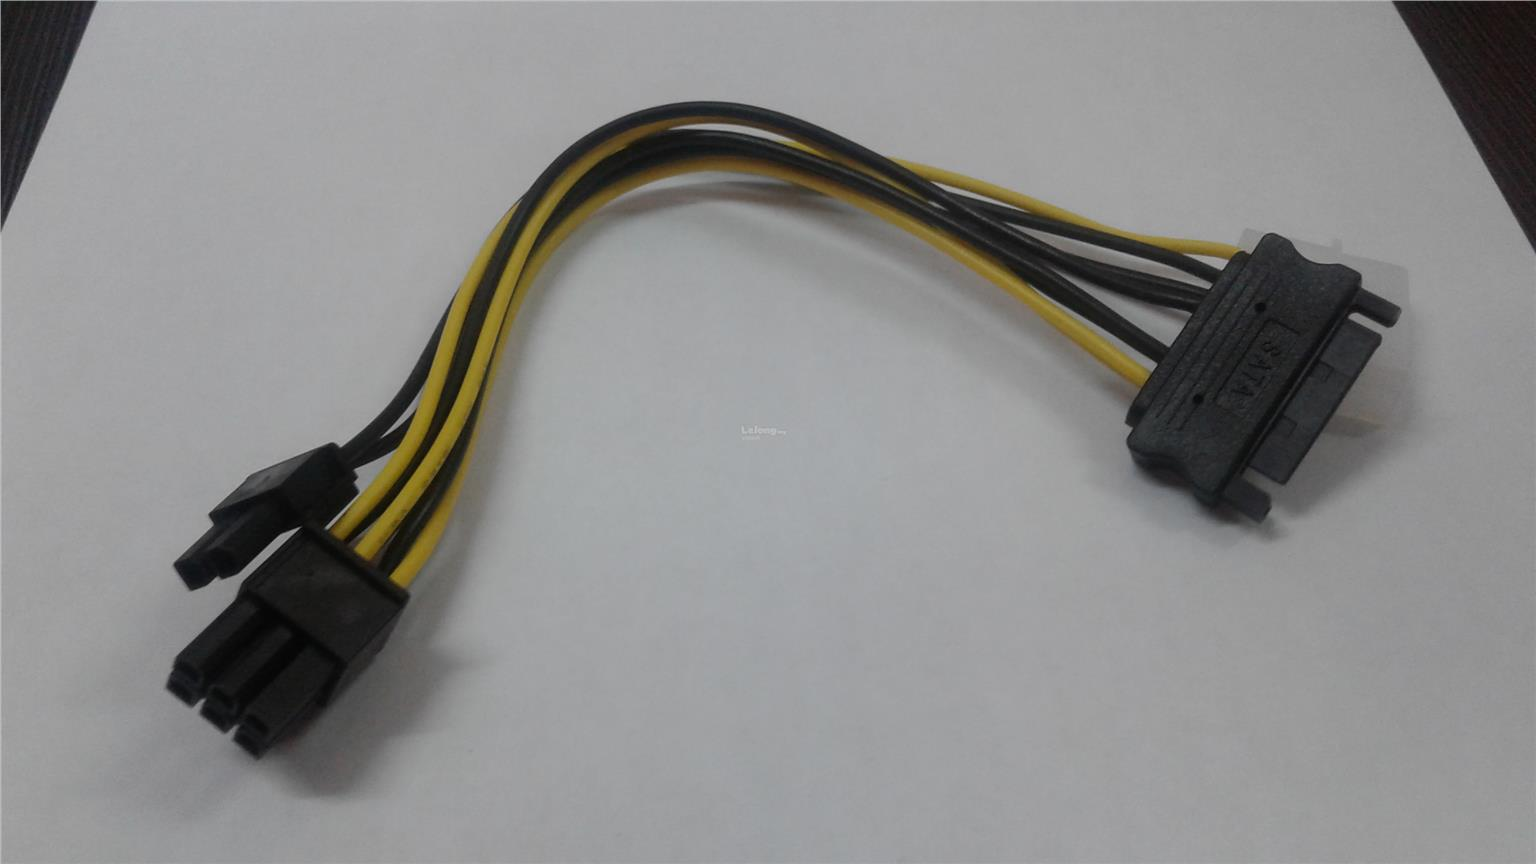 SATA IDE Cable to 8 Pin PCIE Video Card power